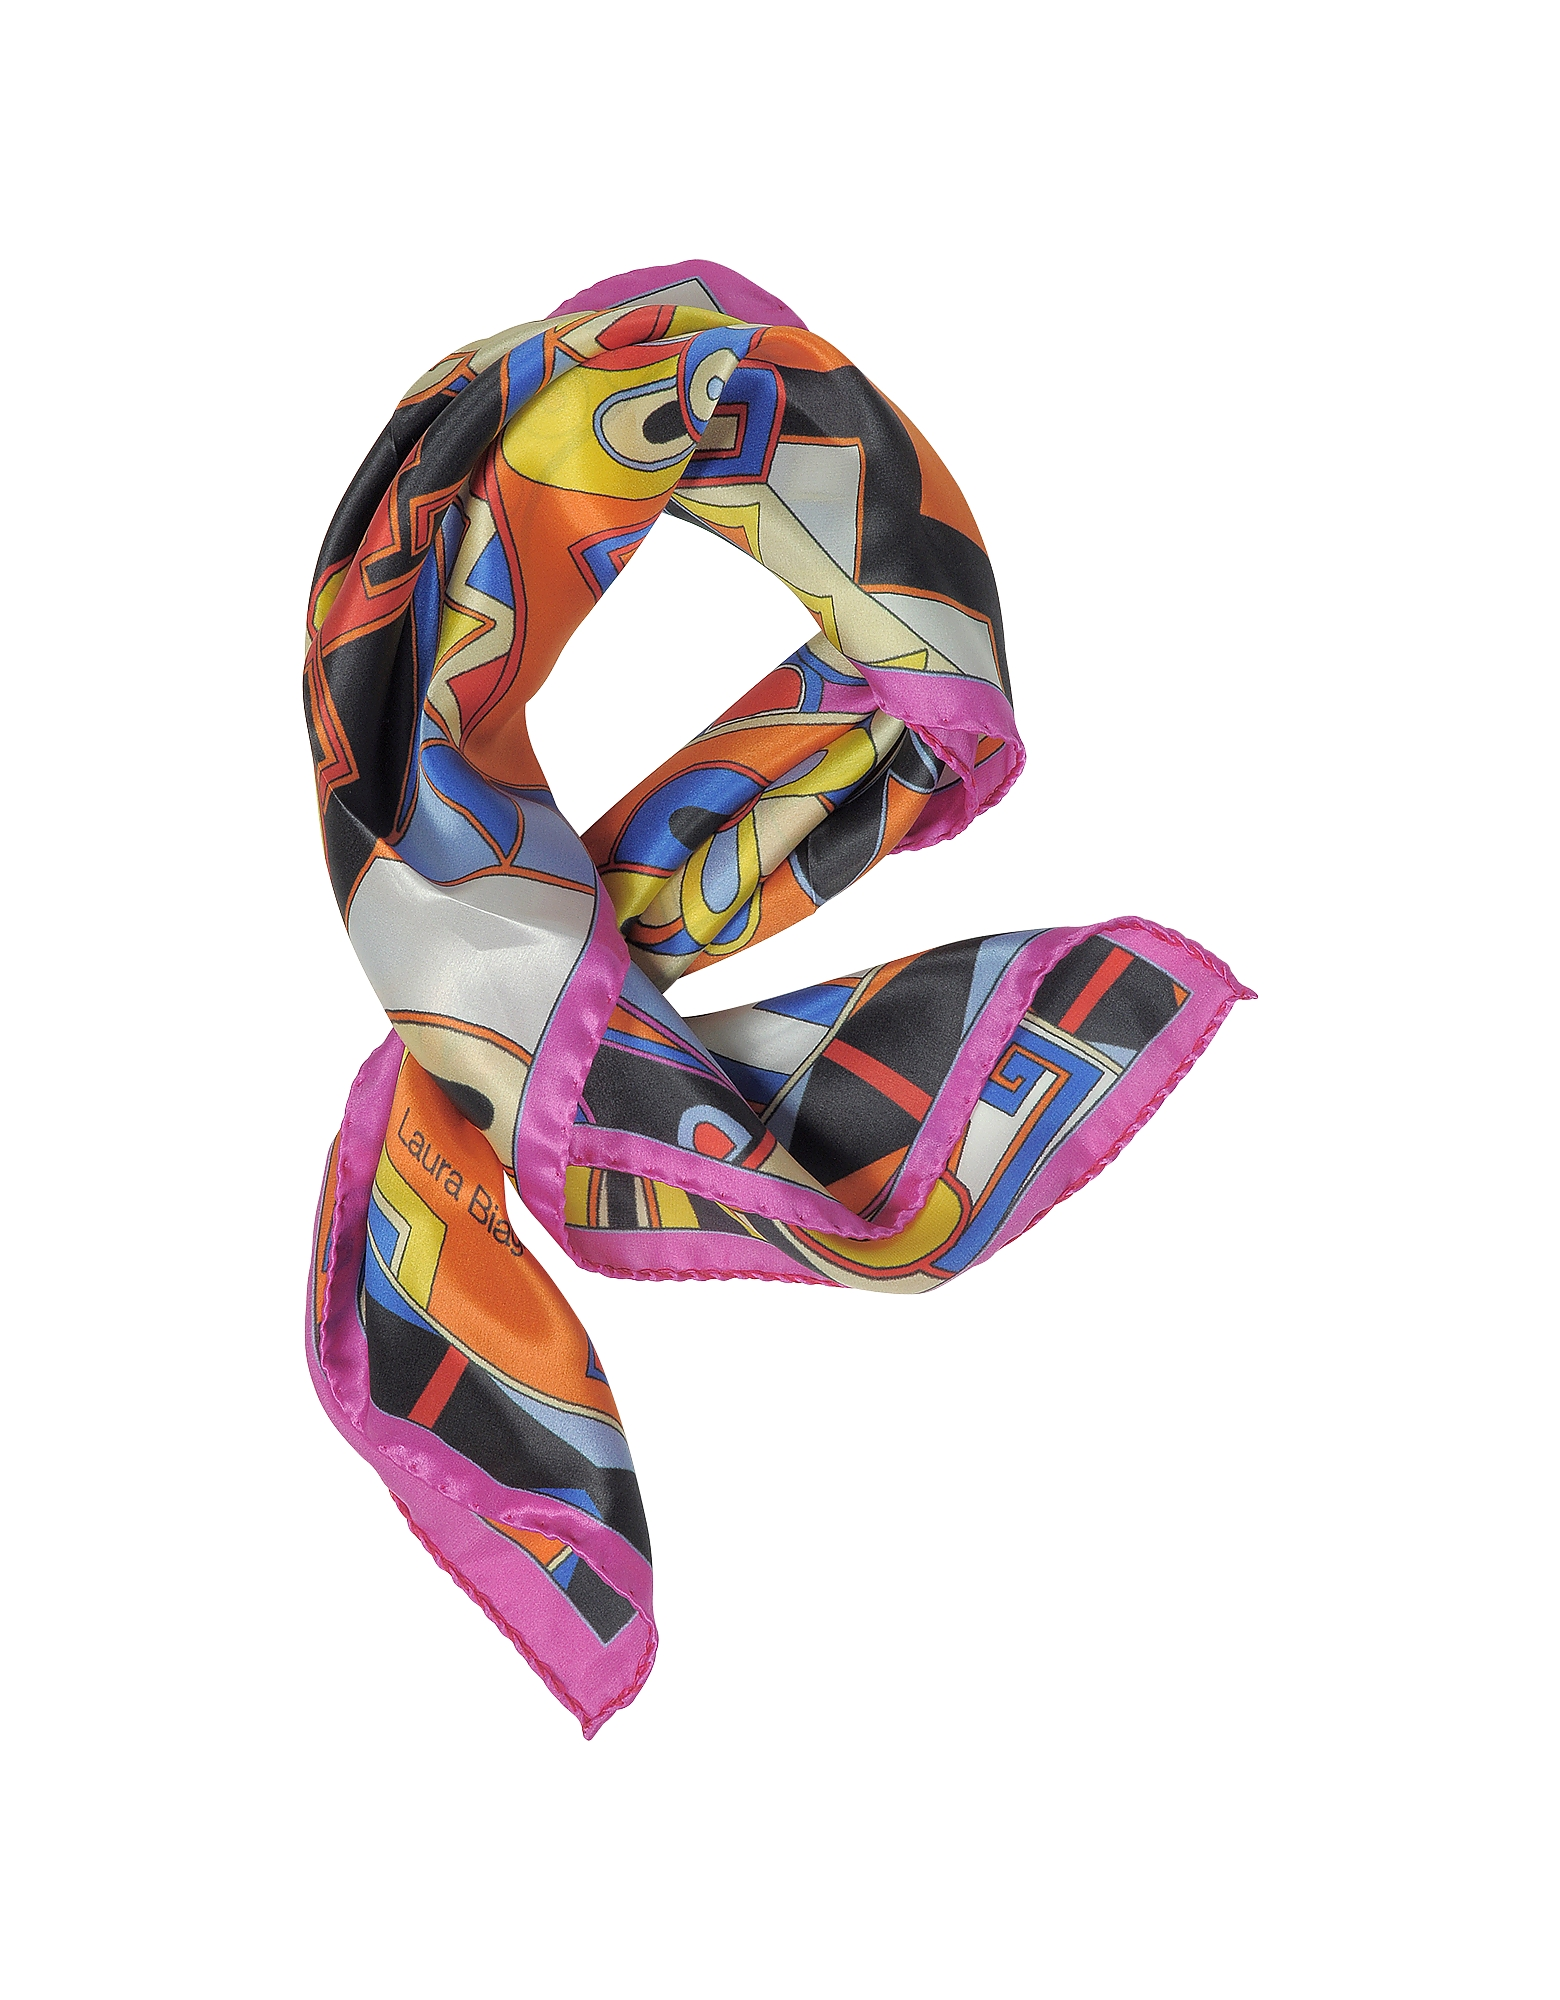 Laura Biagiotti Bandanas, Pink and Multicolor Floral & Geometric Print Satin Silk Bandana